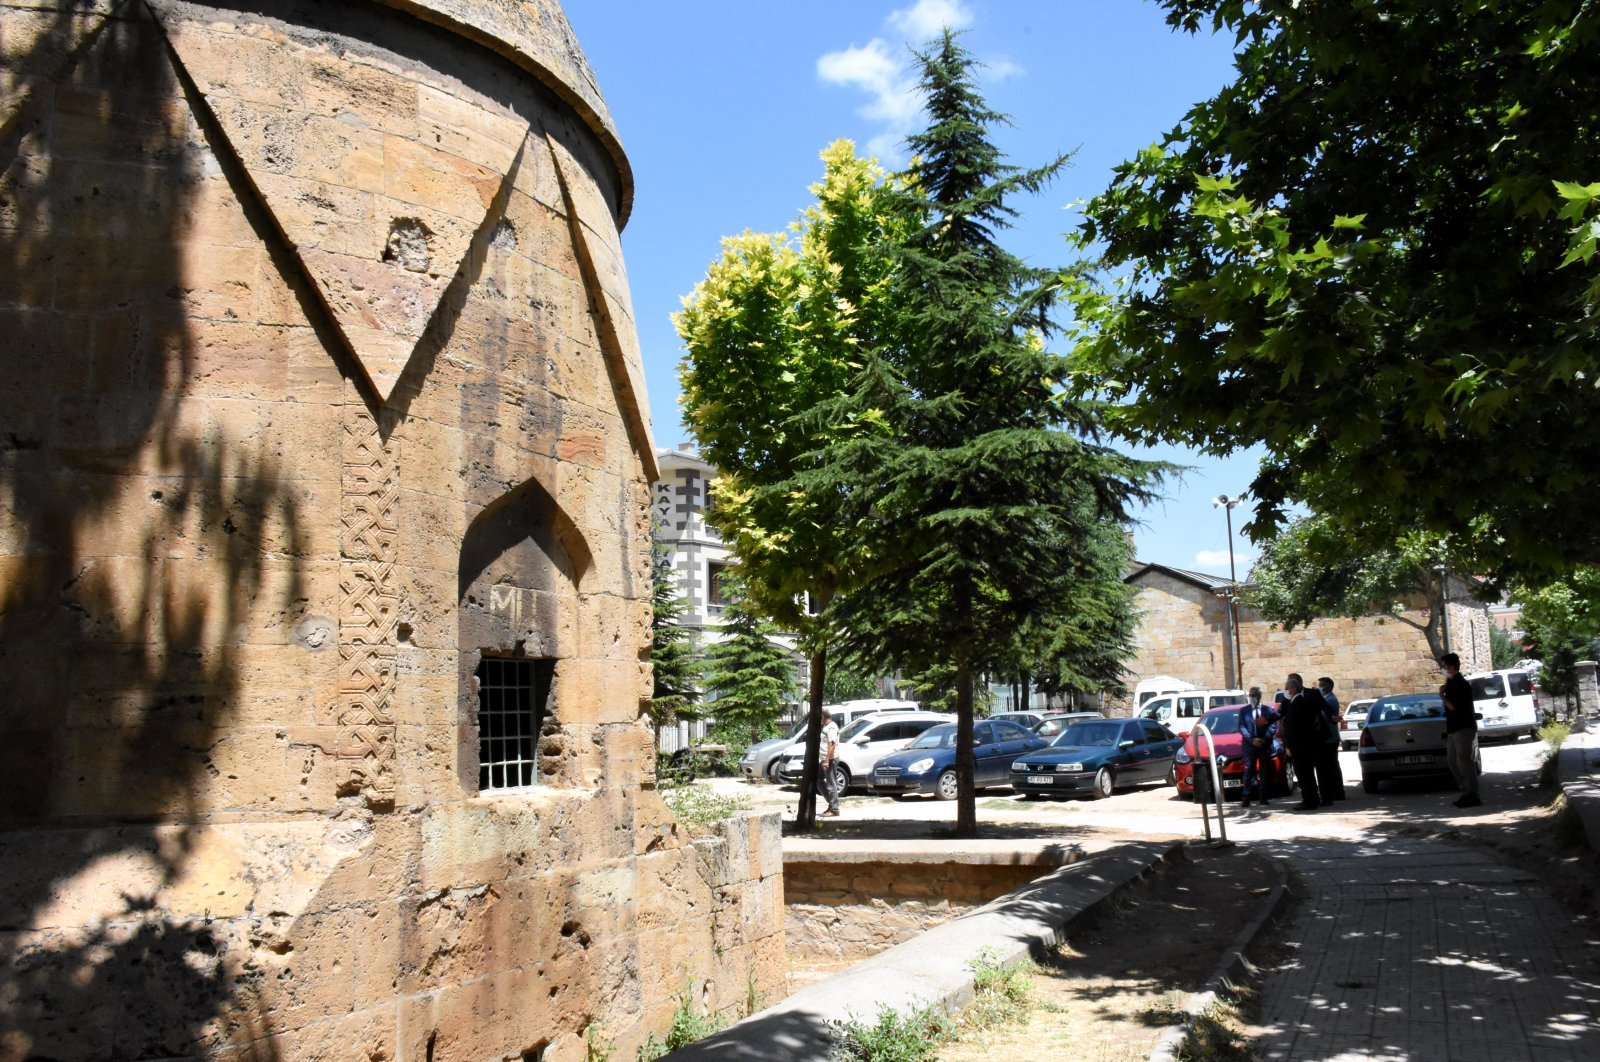 The Melikgazi Tomb is located behind the Lale Mosque in Yenice district, Kırşehir, central Turkey, July 17, 2020. (AA Photo)